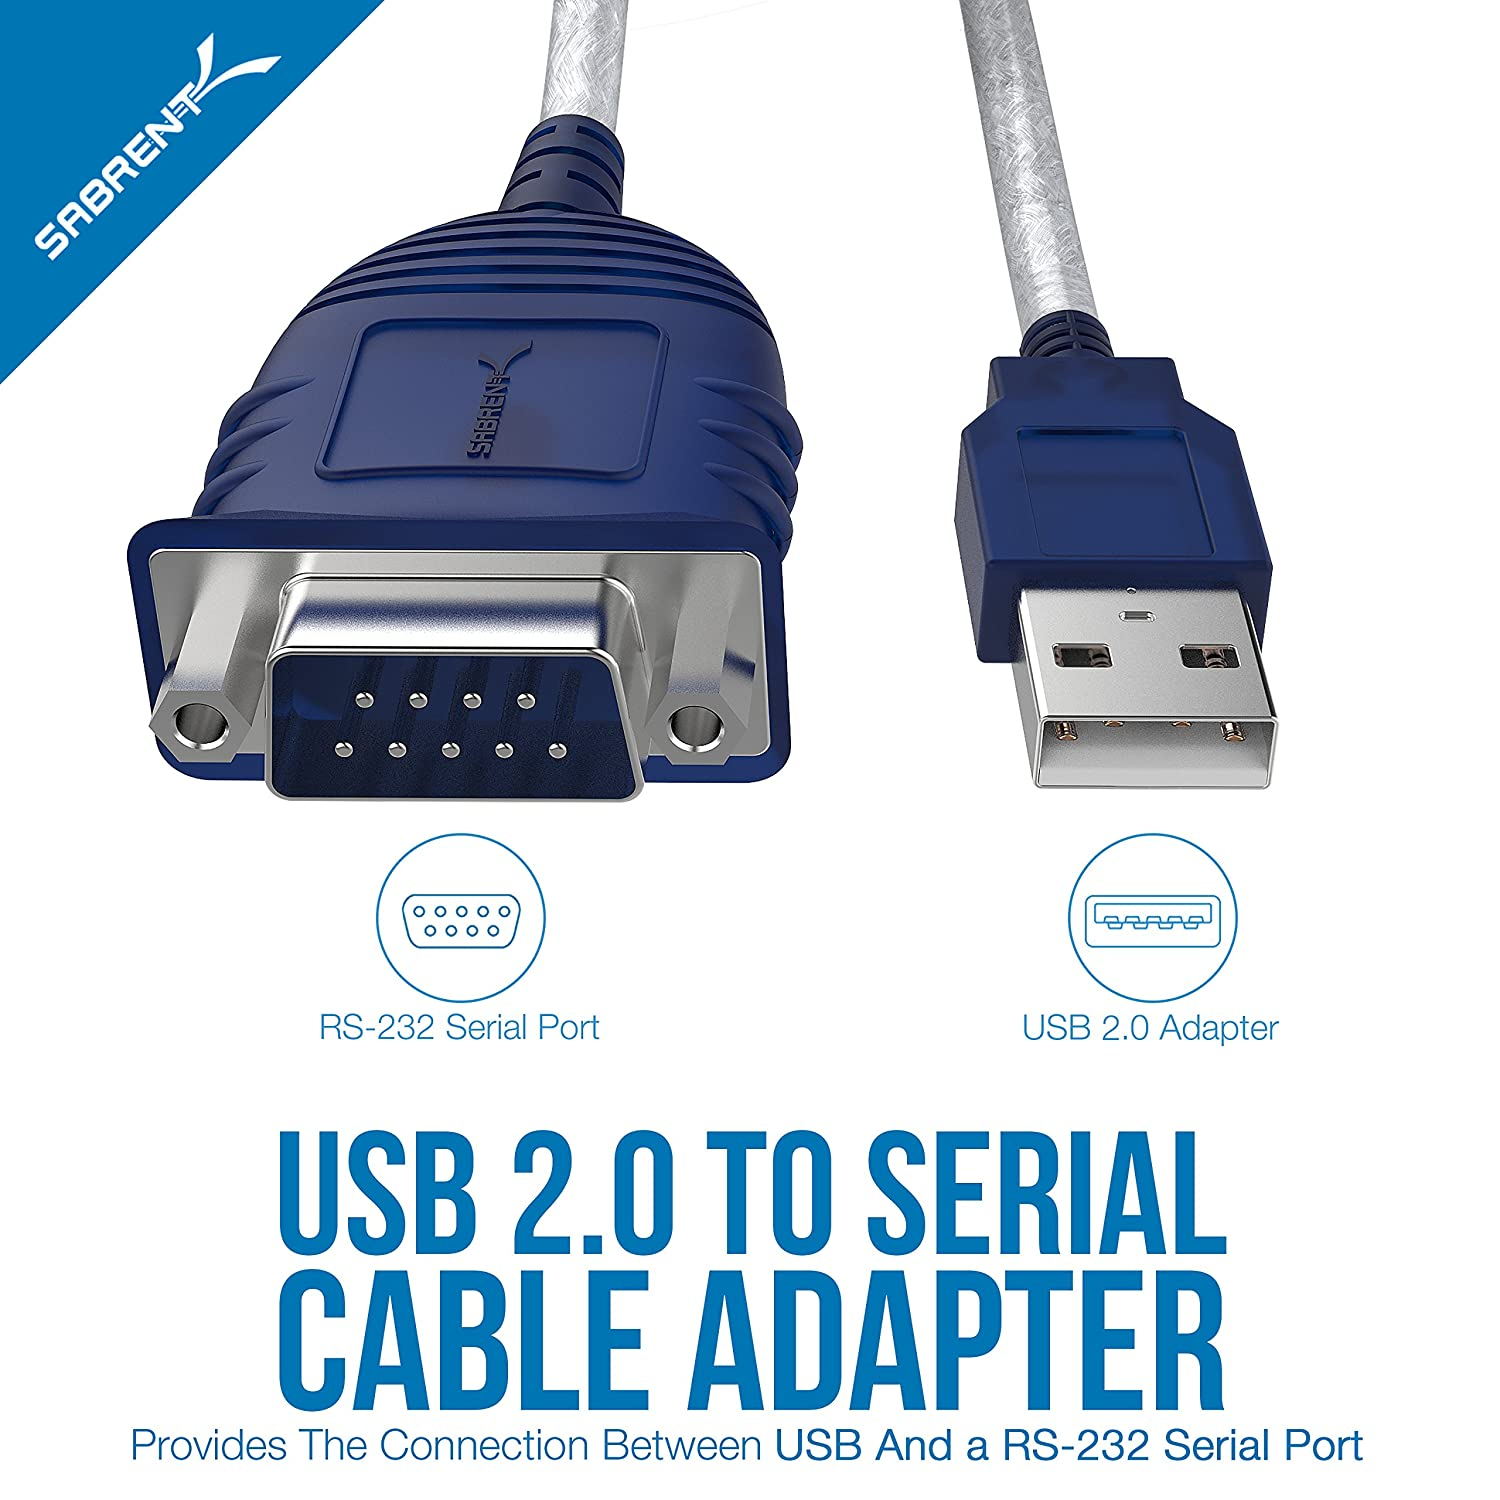 Sabrent Usb 20 To Serial 9 Pin Db Rs 232 Converter Selecting And Using Interface Parts For Your Power Supply Voltages Cable Prolific Chipset Hexnuts Windows 10 81 8 7 Vista Xp Mac Os X 106 Above